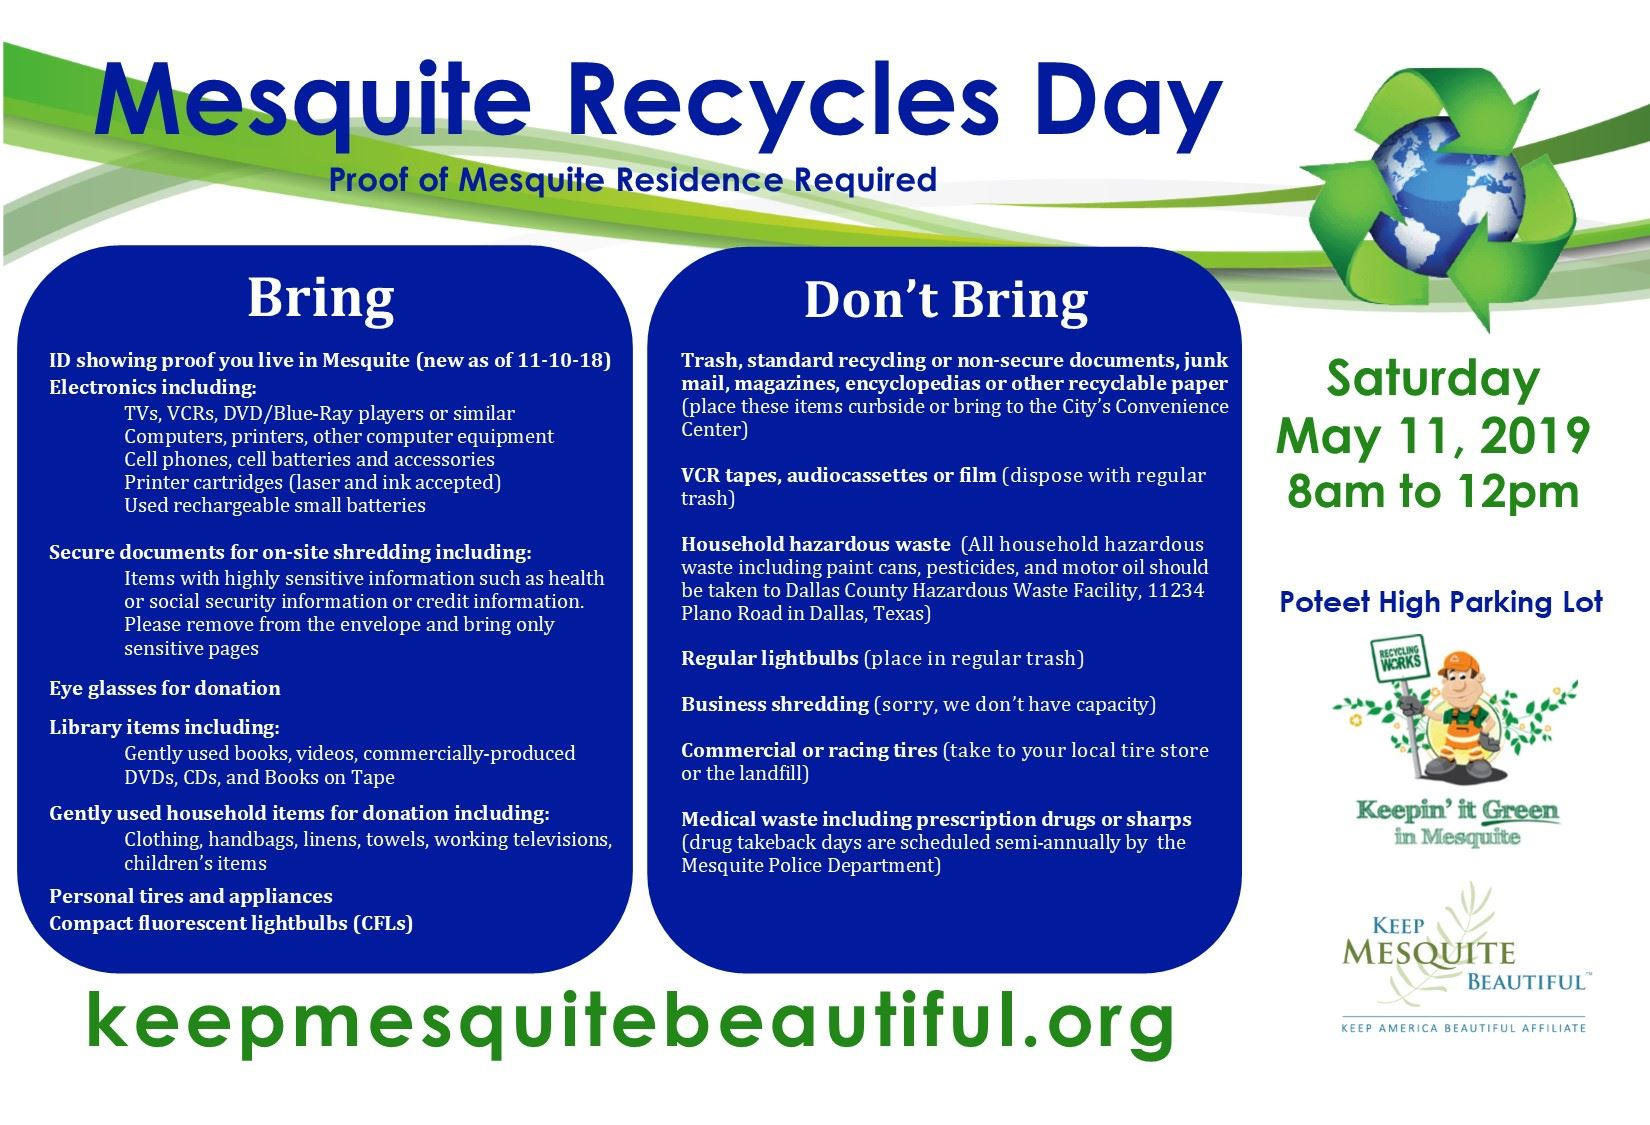 recycles day items accepted